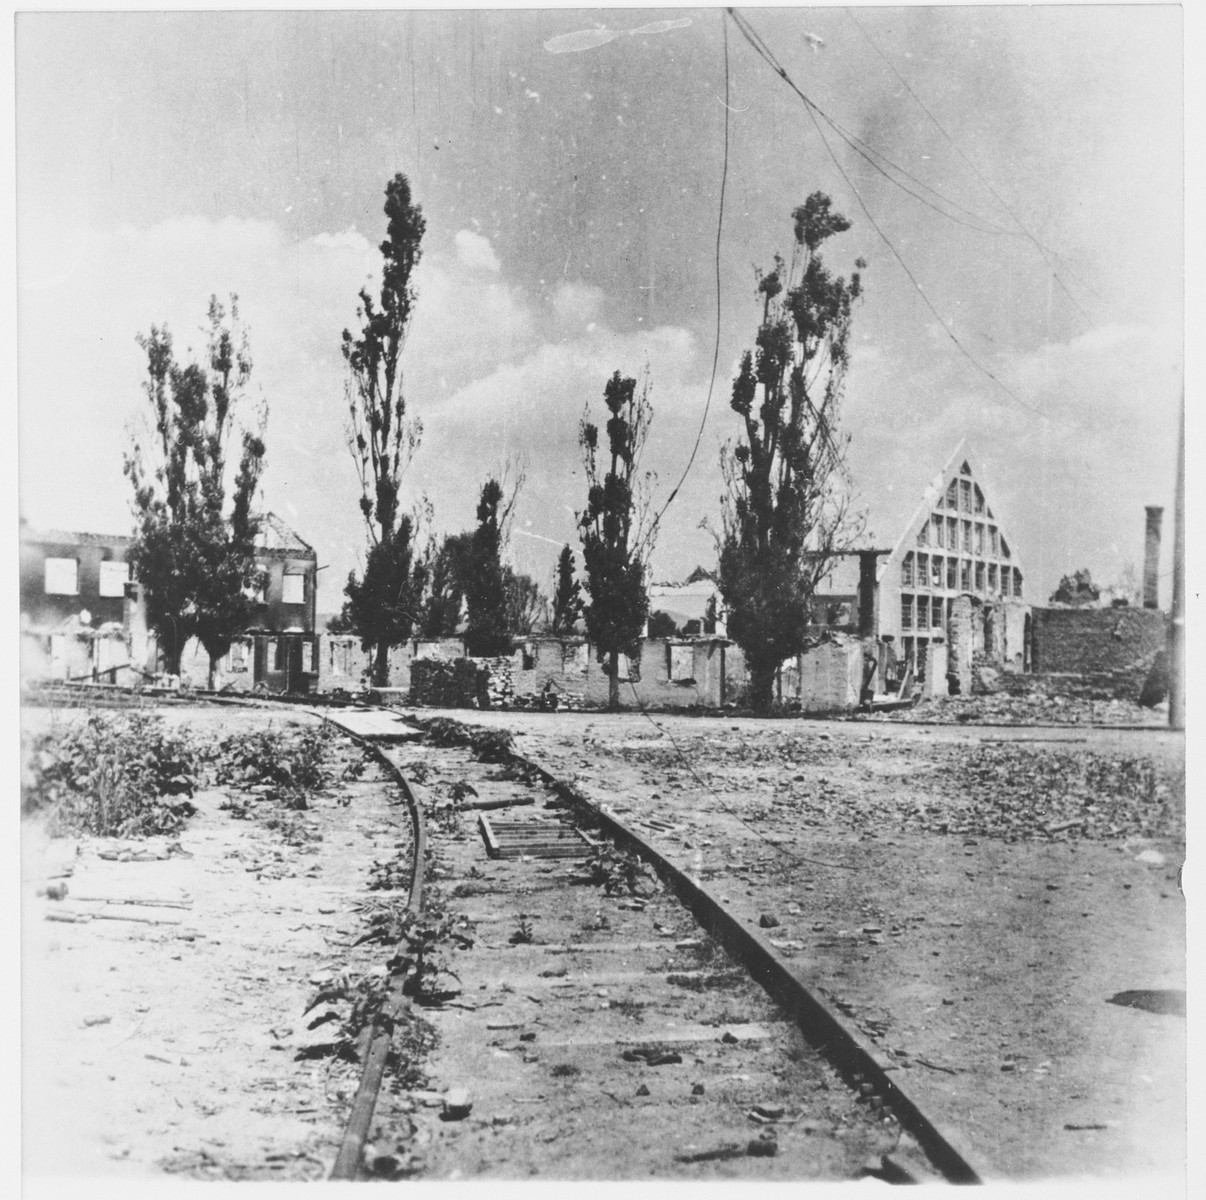 View of train tracks leading to the gate of the destroyed Jasenovac concentration camp.